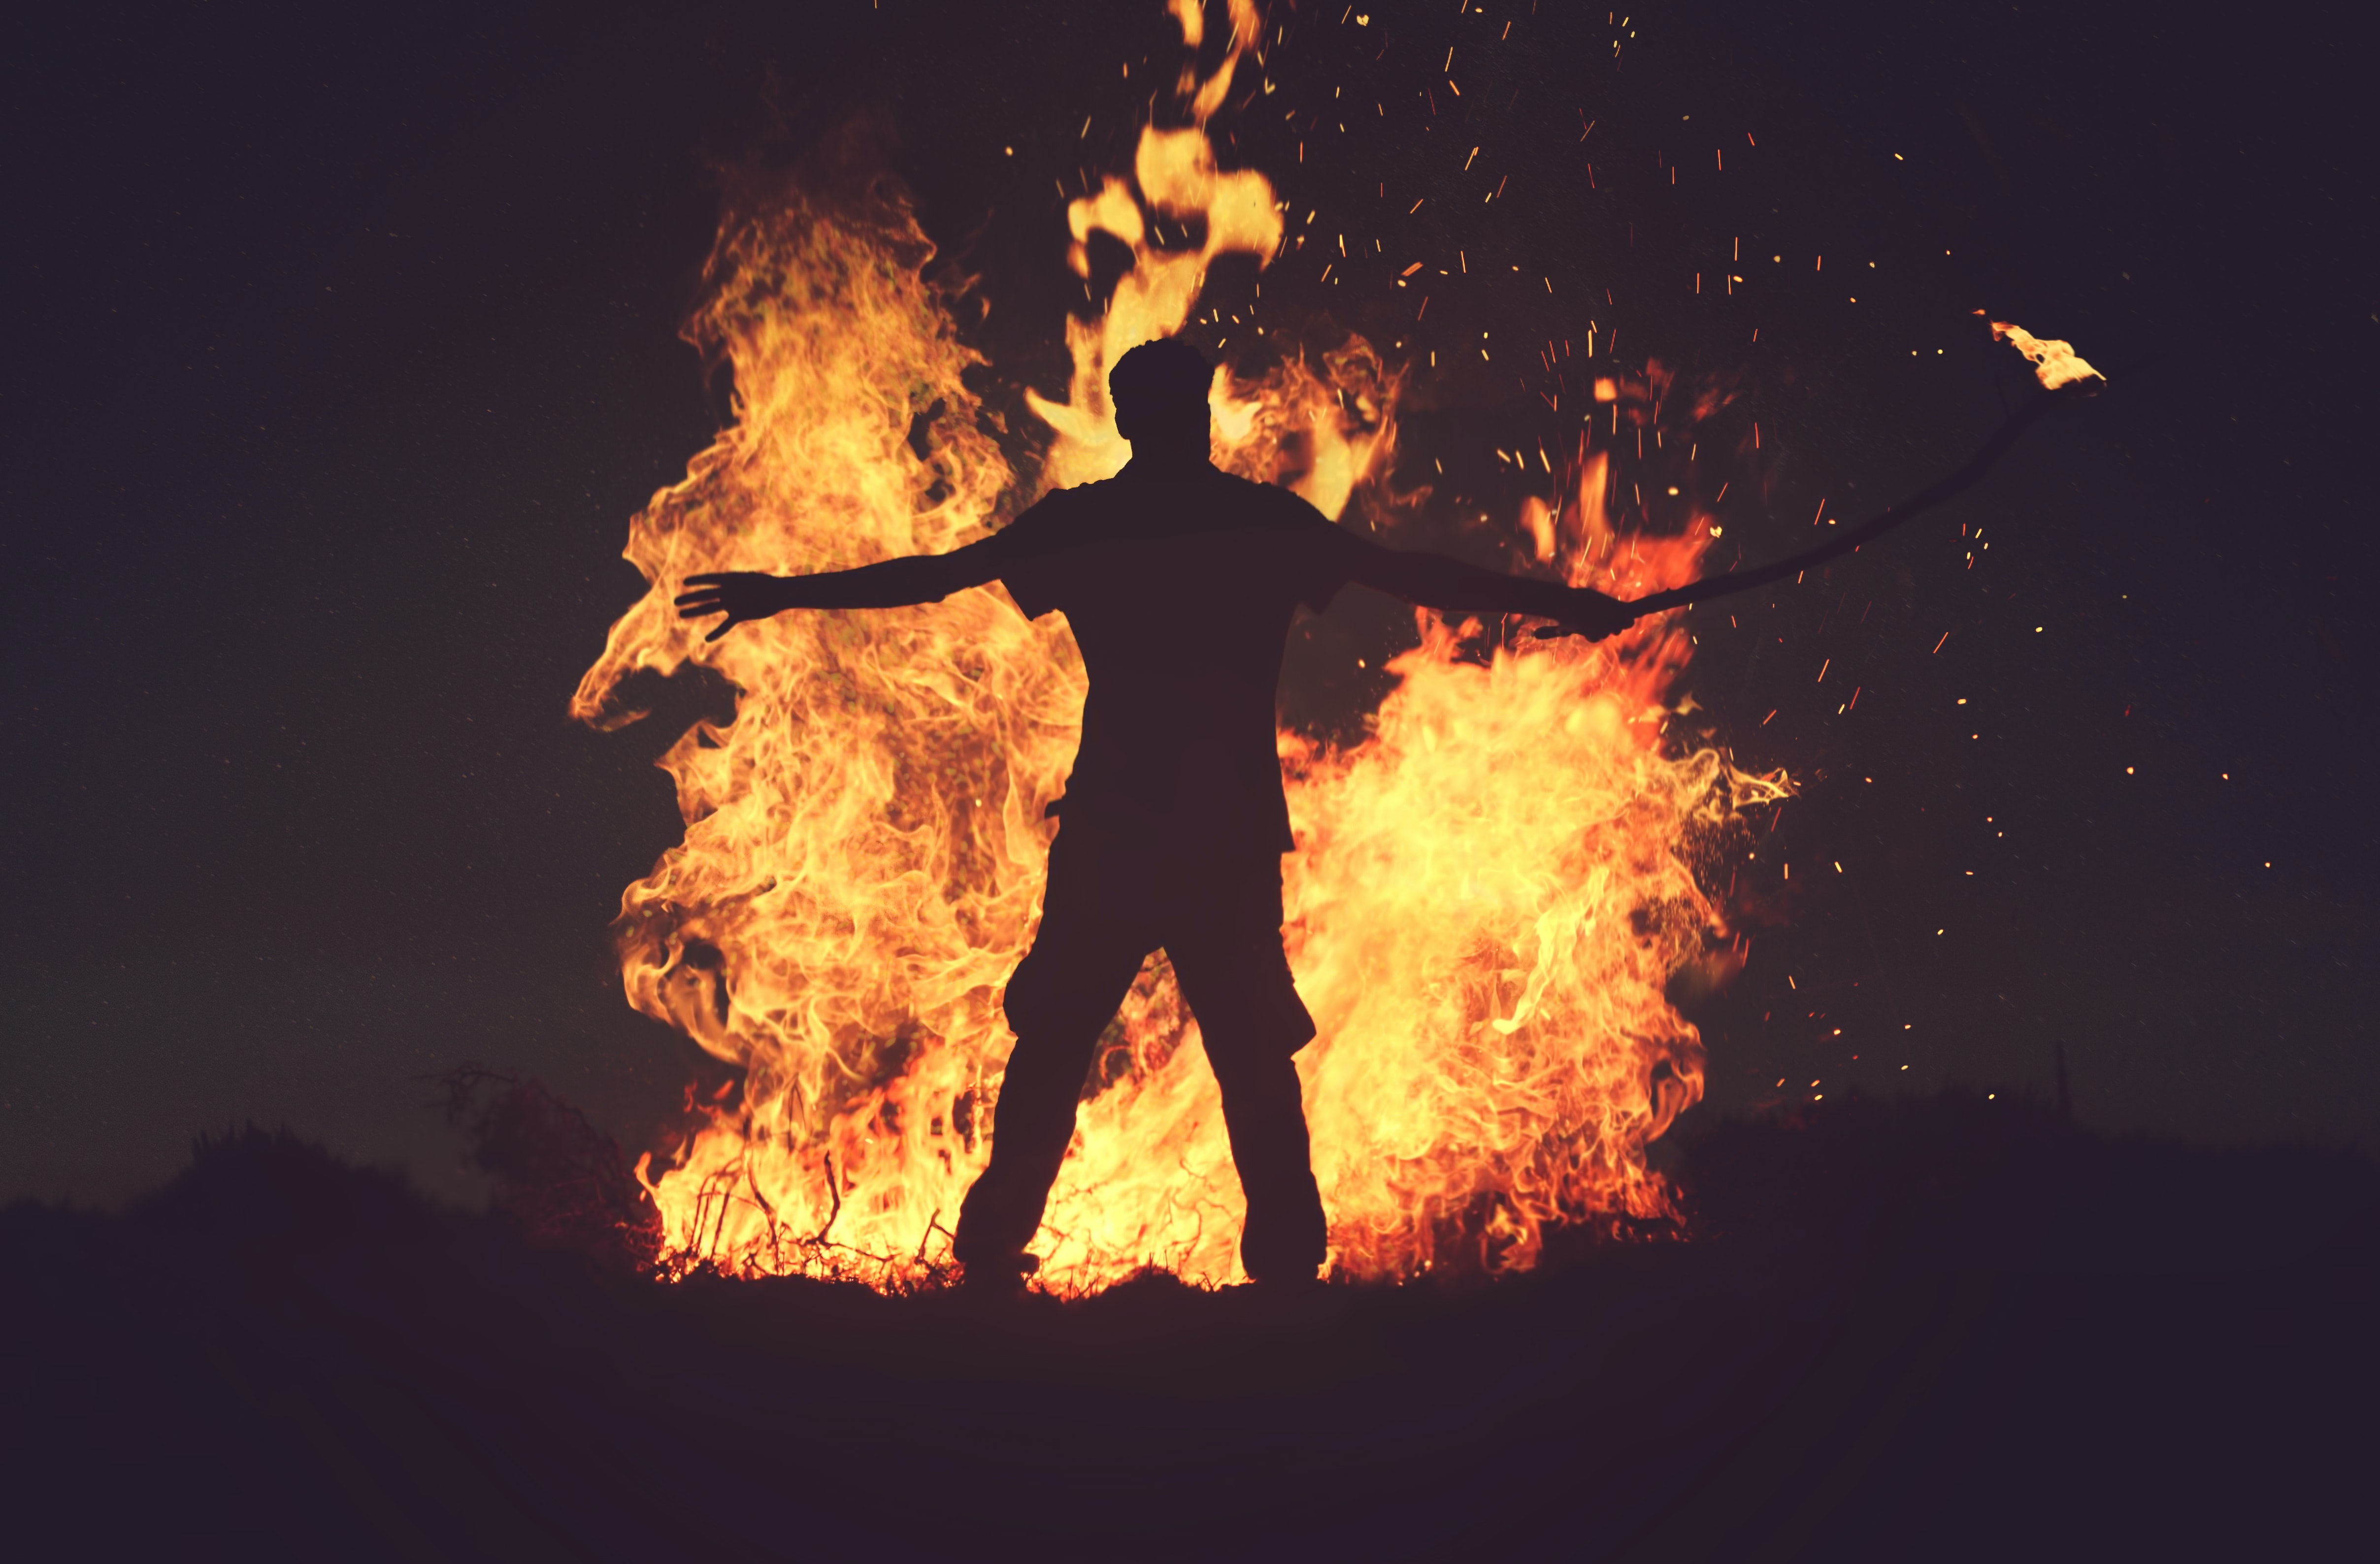 A silhouette of a man holding a burning torch next to a huge bonfire